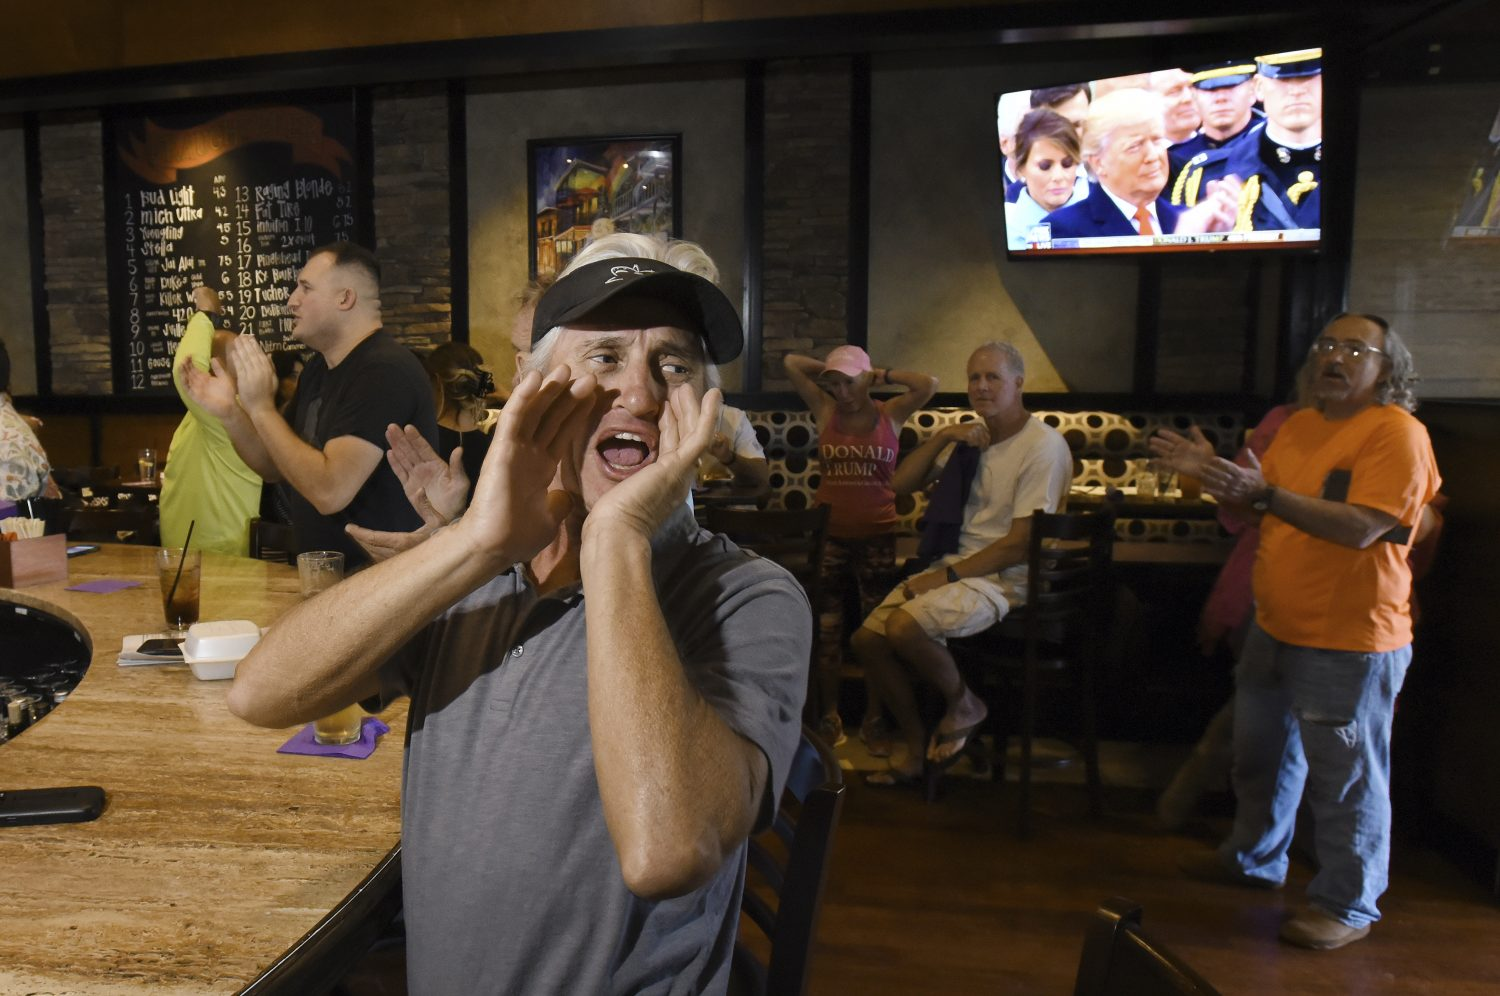 """Pete Molinaro from St. Augustine, Florida chants """"USA, USA"""" as other's at the Inauguration Watch Party applaud after President Donald Trump finished his inauguration speech at Whiskey Jax in Marsh Landing, Florida Friday, Jan. 20. 2017. (Bob Self/The Florida Times-Union via AP)"""